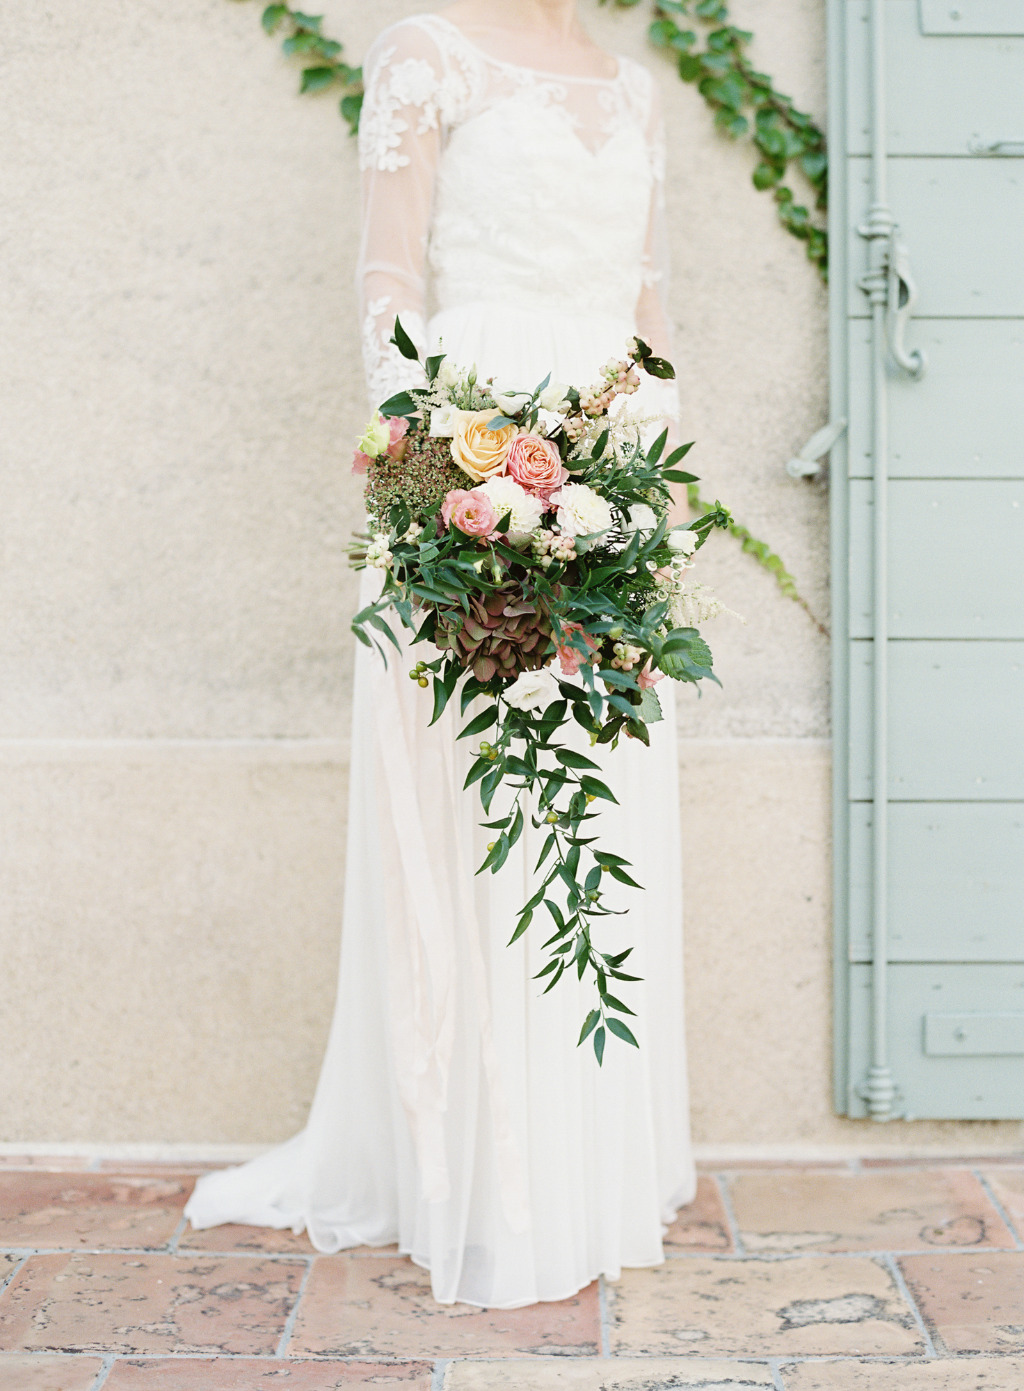 Jenny's delicate and wild bouquet for her wedding in a stunning french château